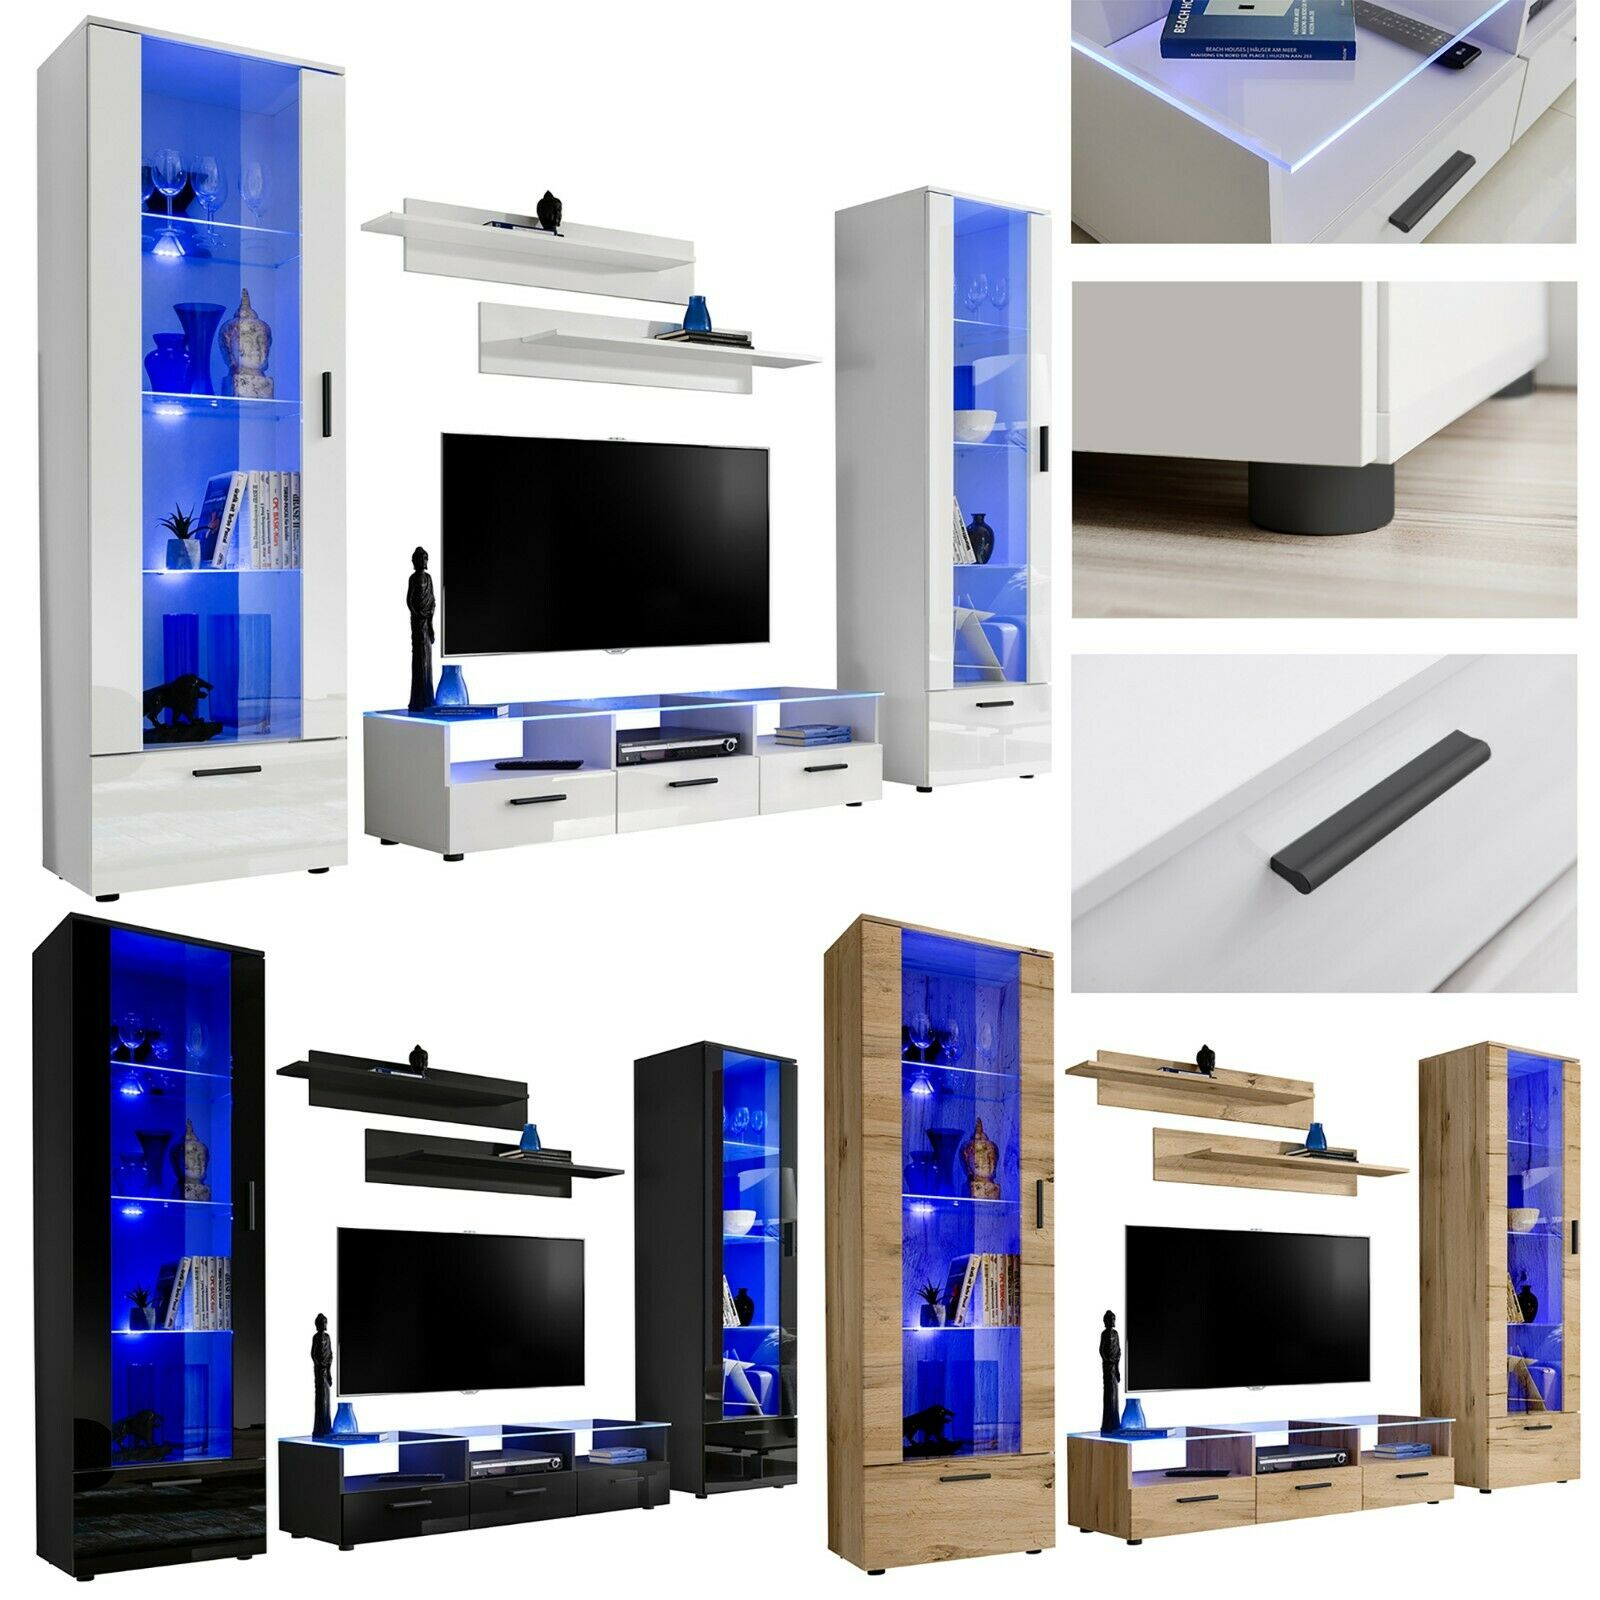 Modern living room set cupboard stand gloss tv unit for Modern set of living room furniture wall tv unit